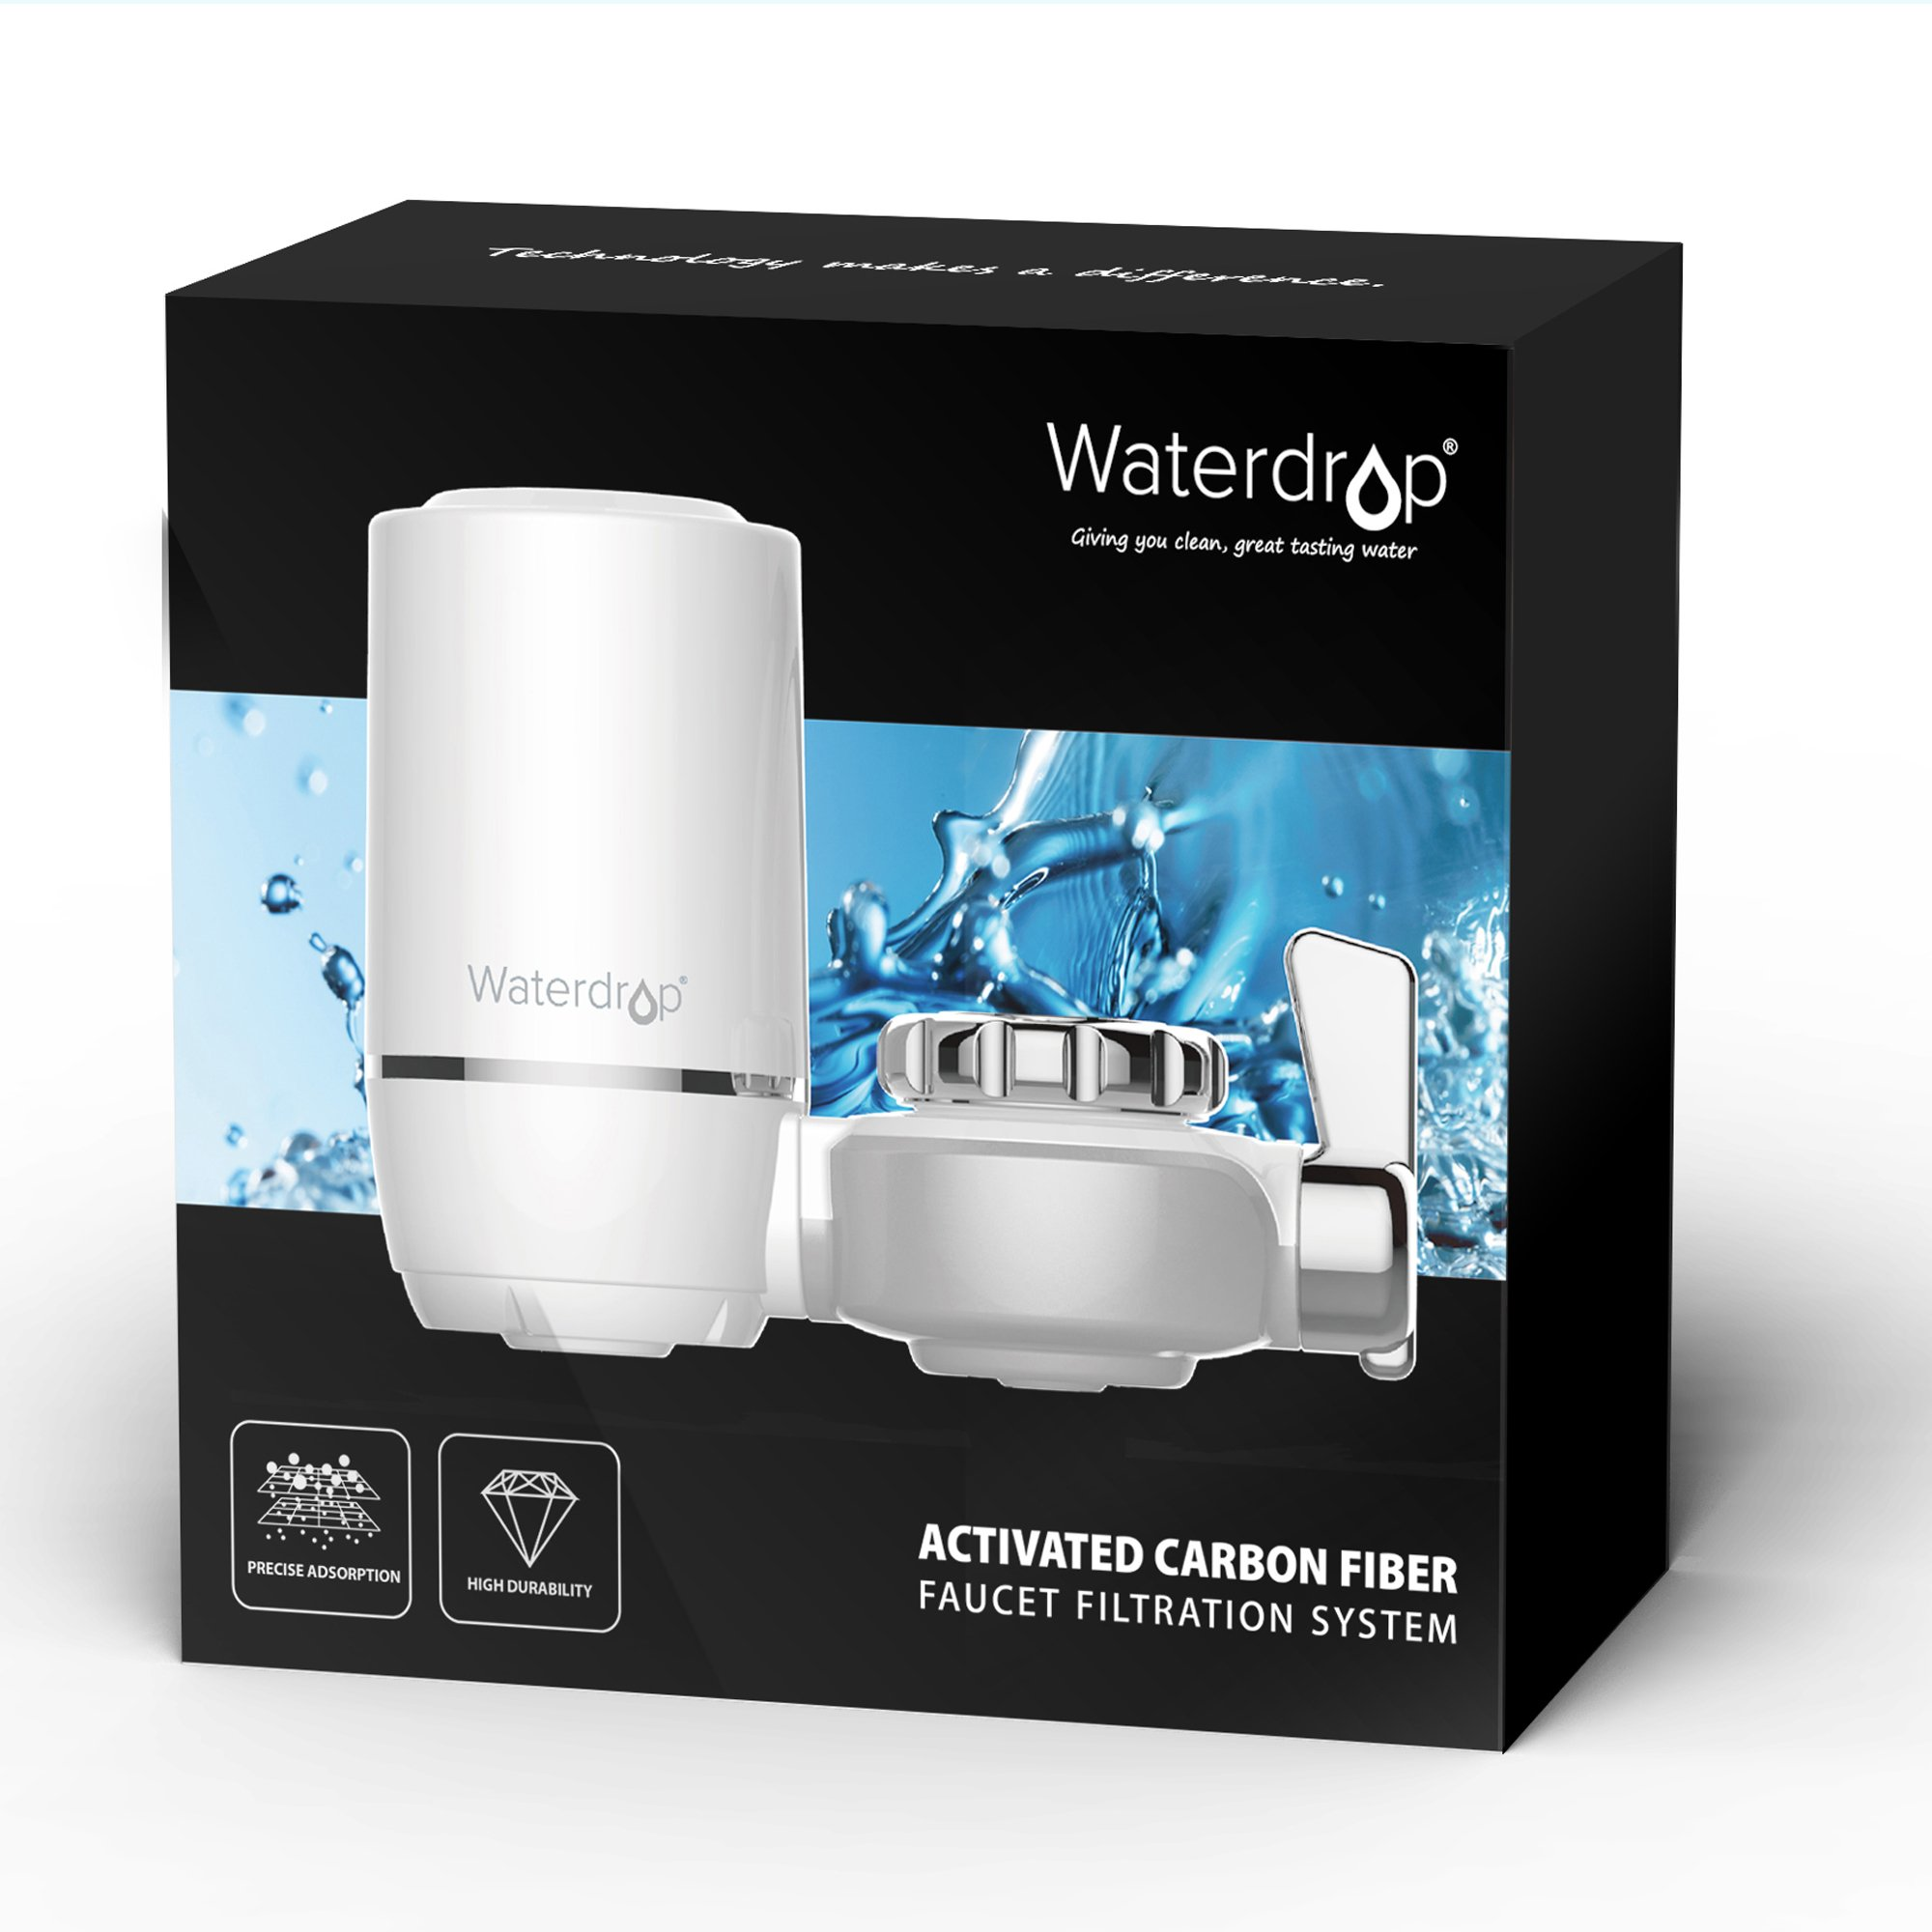 Waterdrop 320-Gallon Long-Lasting Water Faucet Filtration System ...